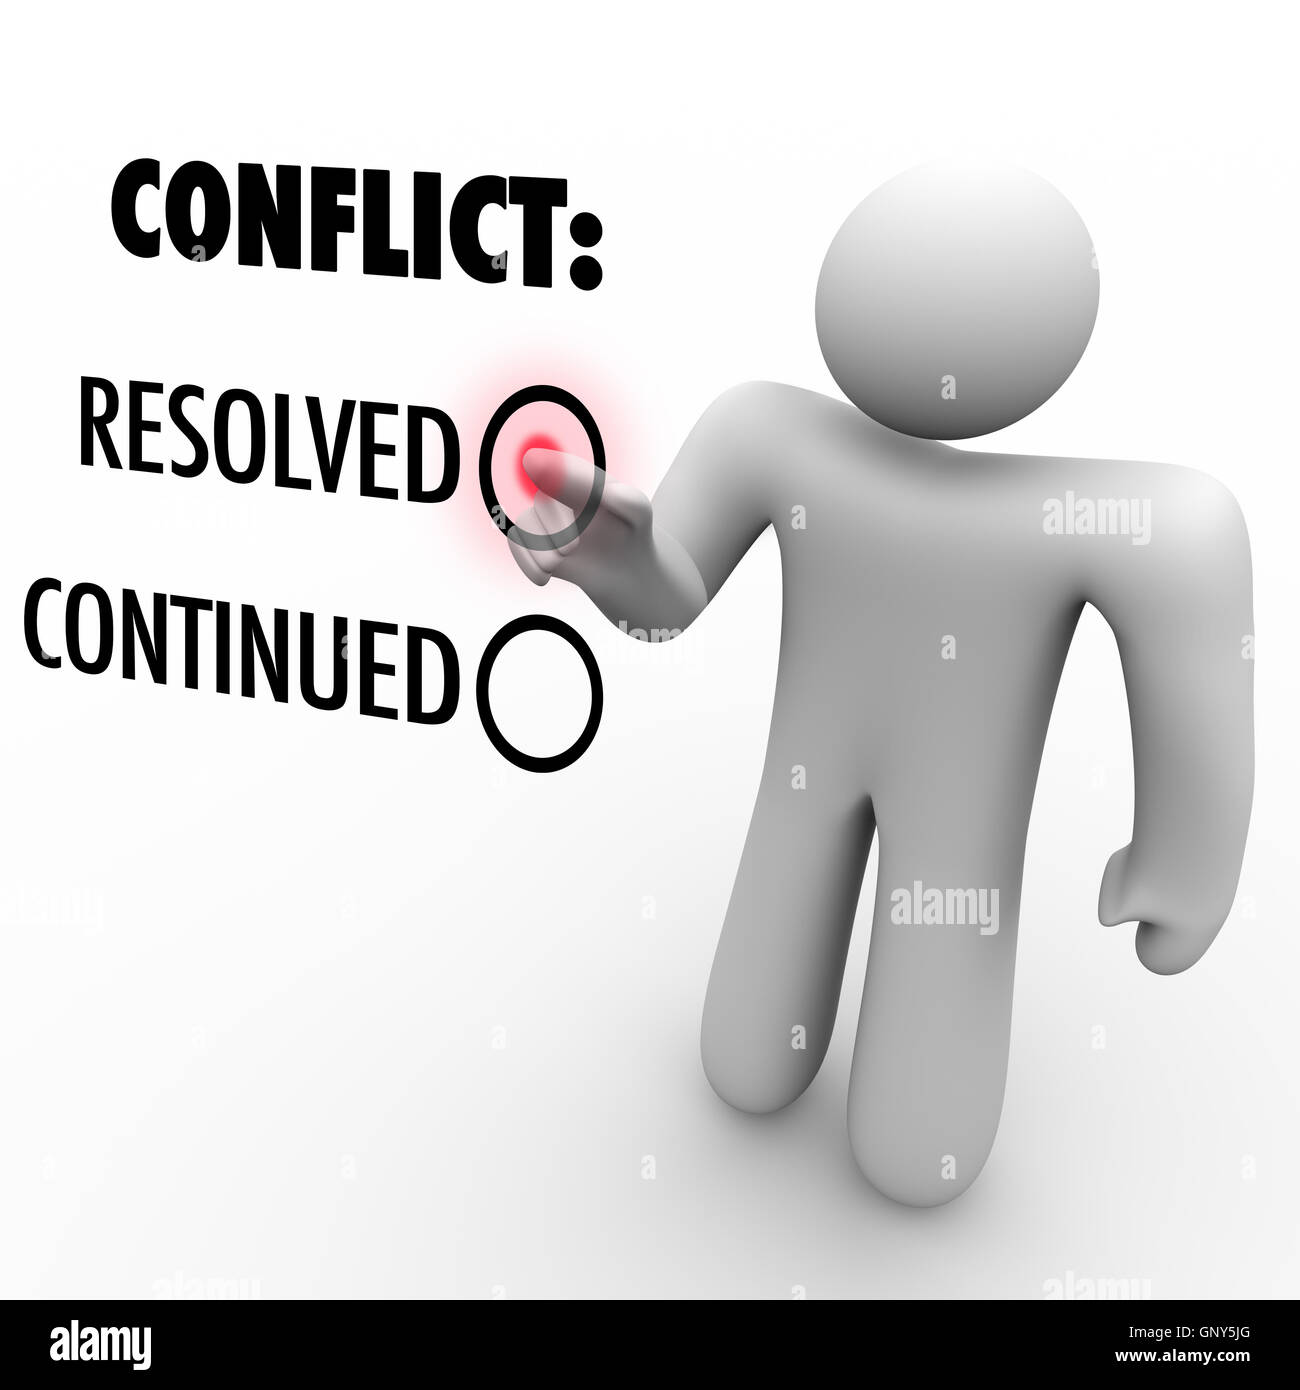 Choose to Resolve or Continue Conflicts - Conflict Resolution - Stock Image